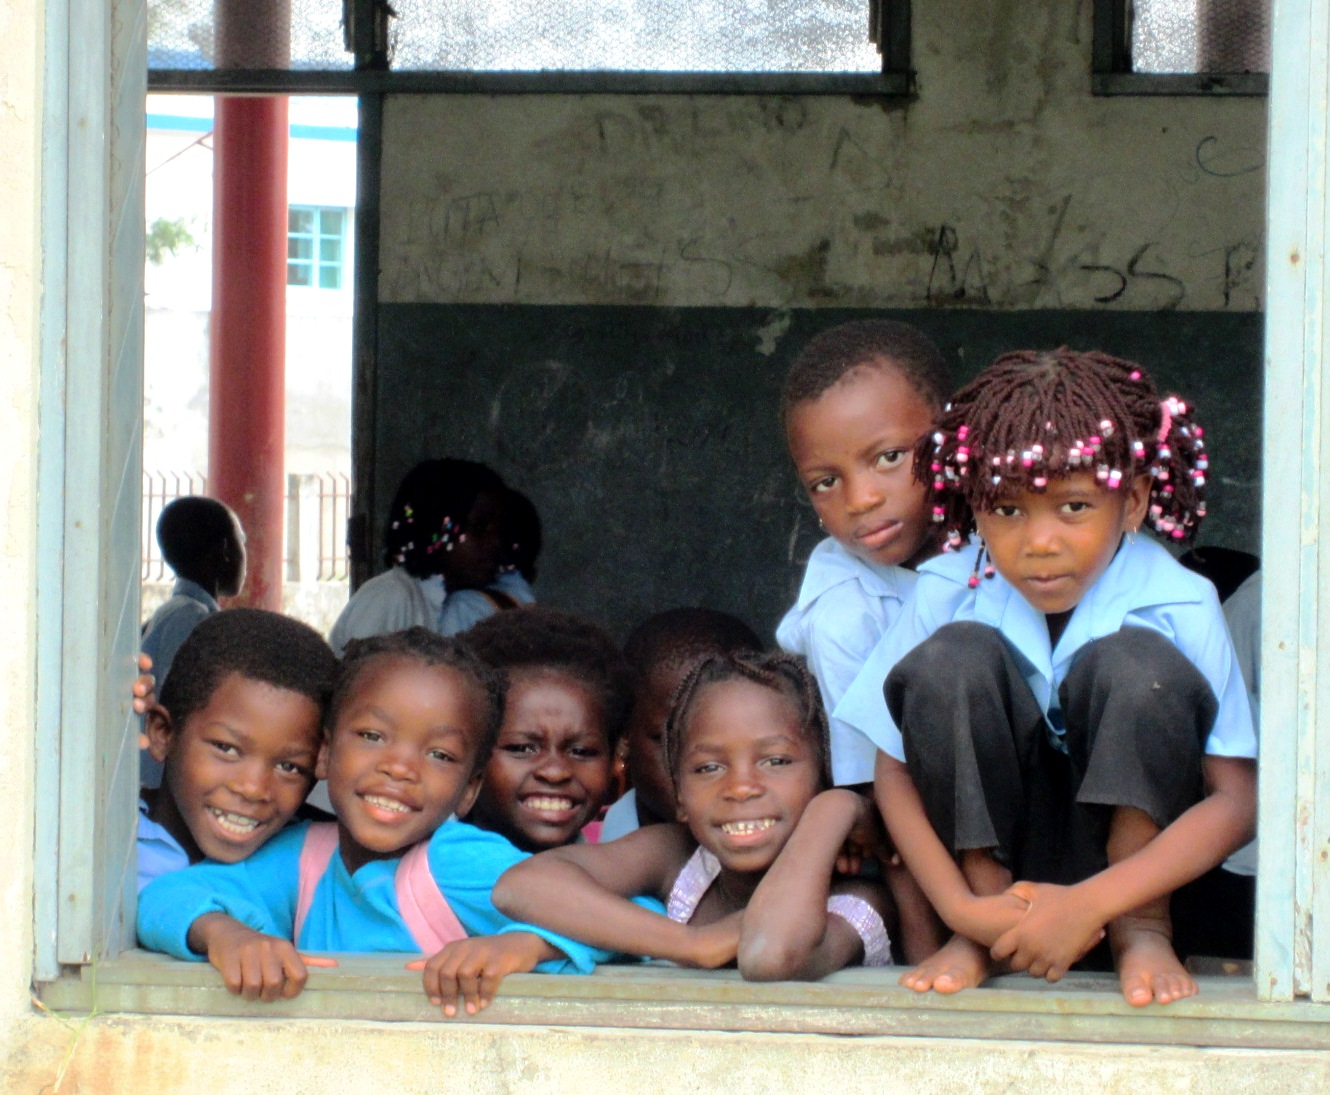 A group of children at a school in Zambezia province, Mozambique